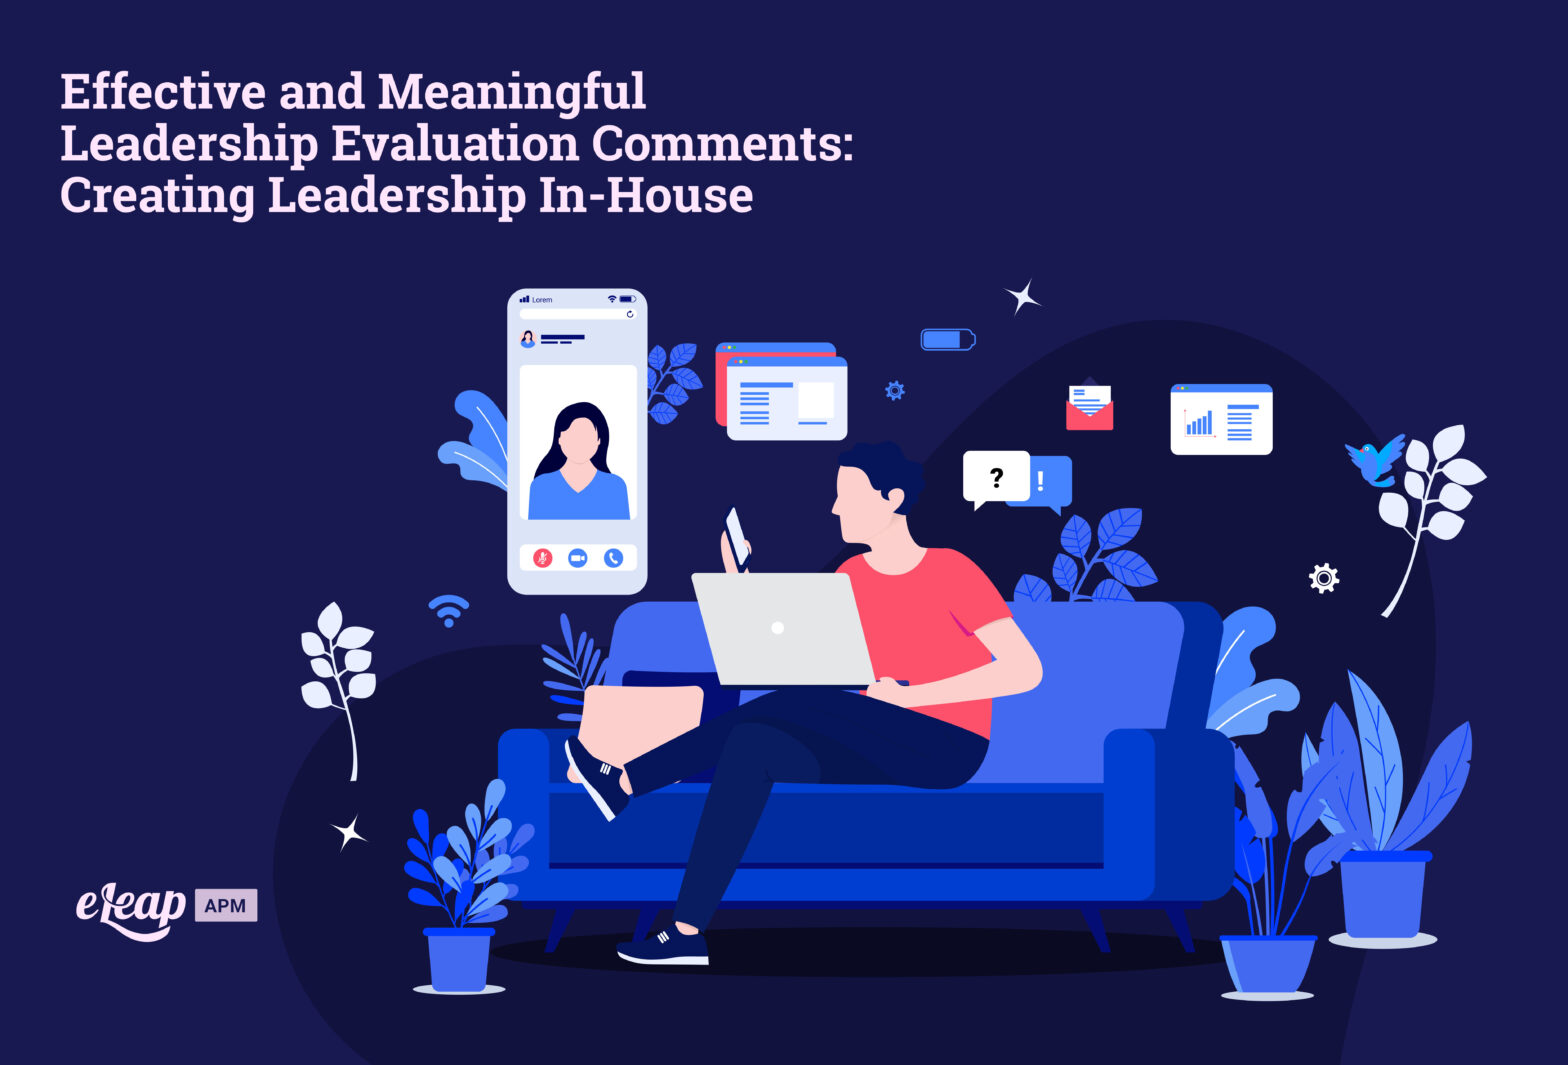 Effective and Meaningful Leadership Evaluation Comments: Creating Leadership In-House